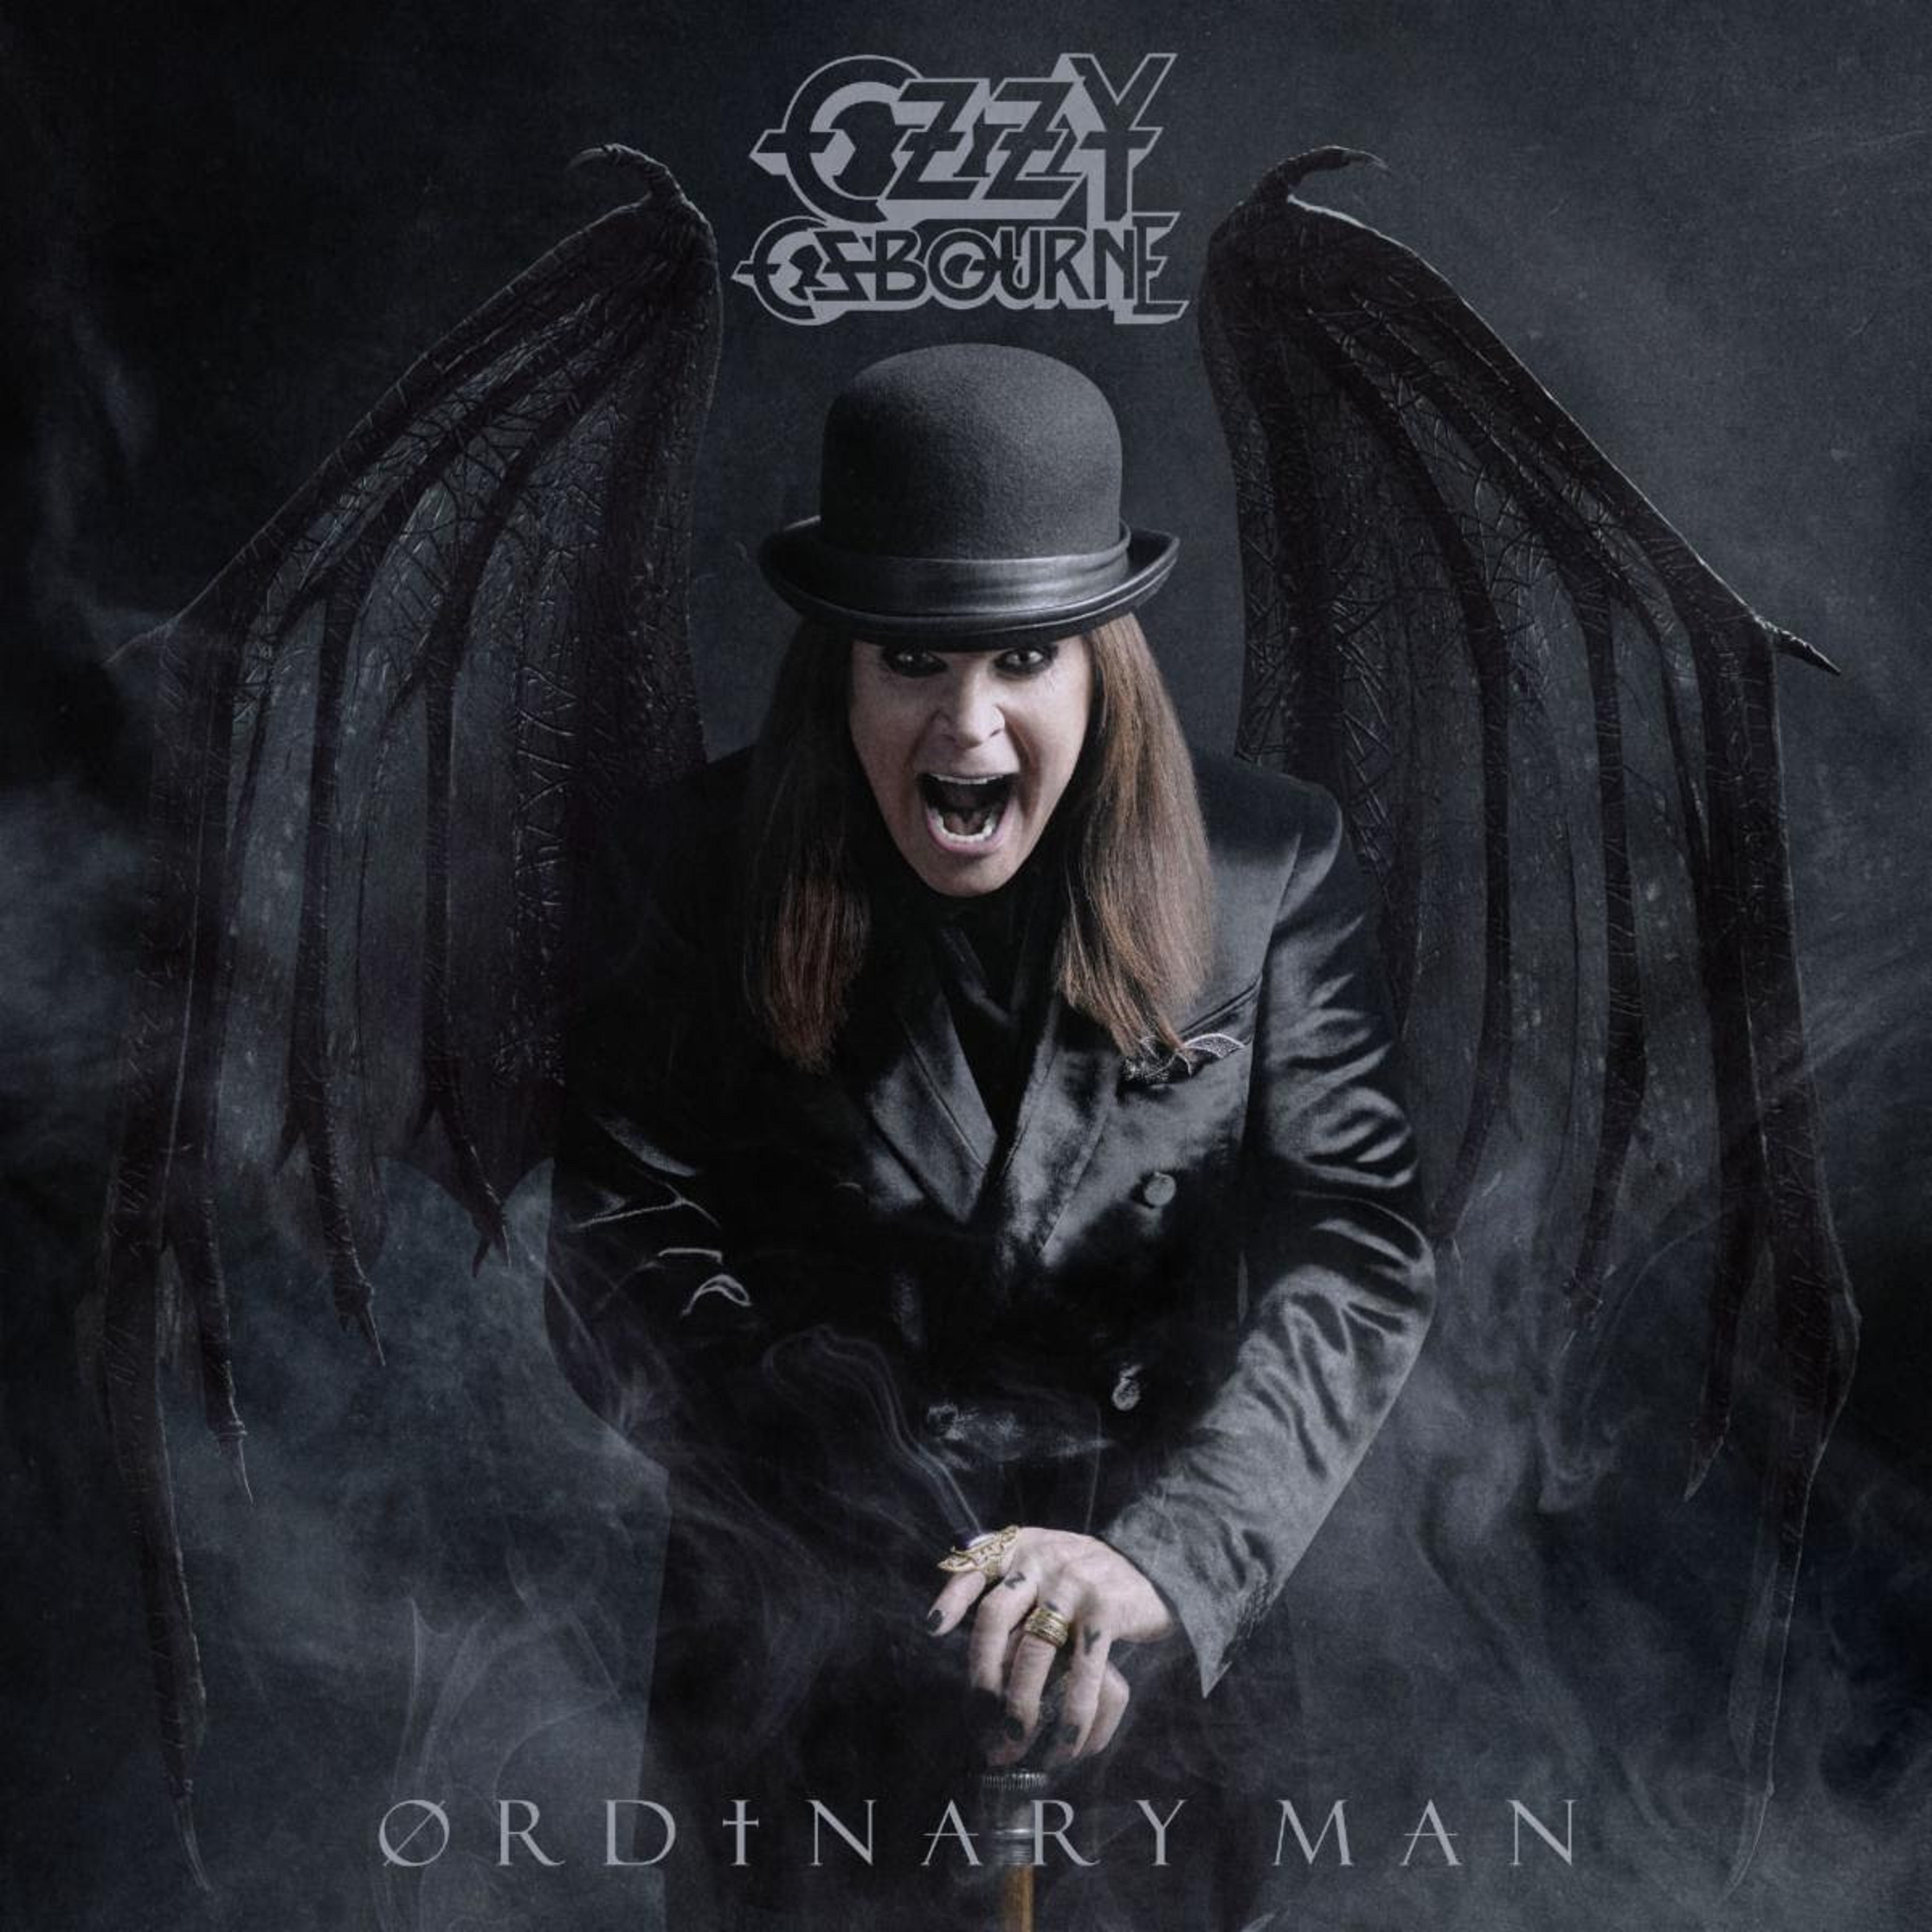 OZZY OSBOURNE Releases New Album, 'ORDINARY MAN'